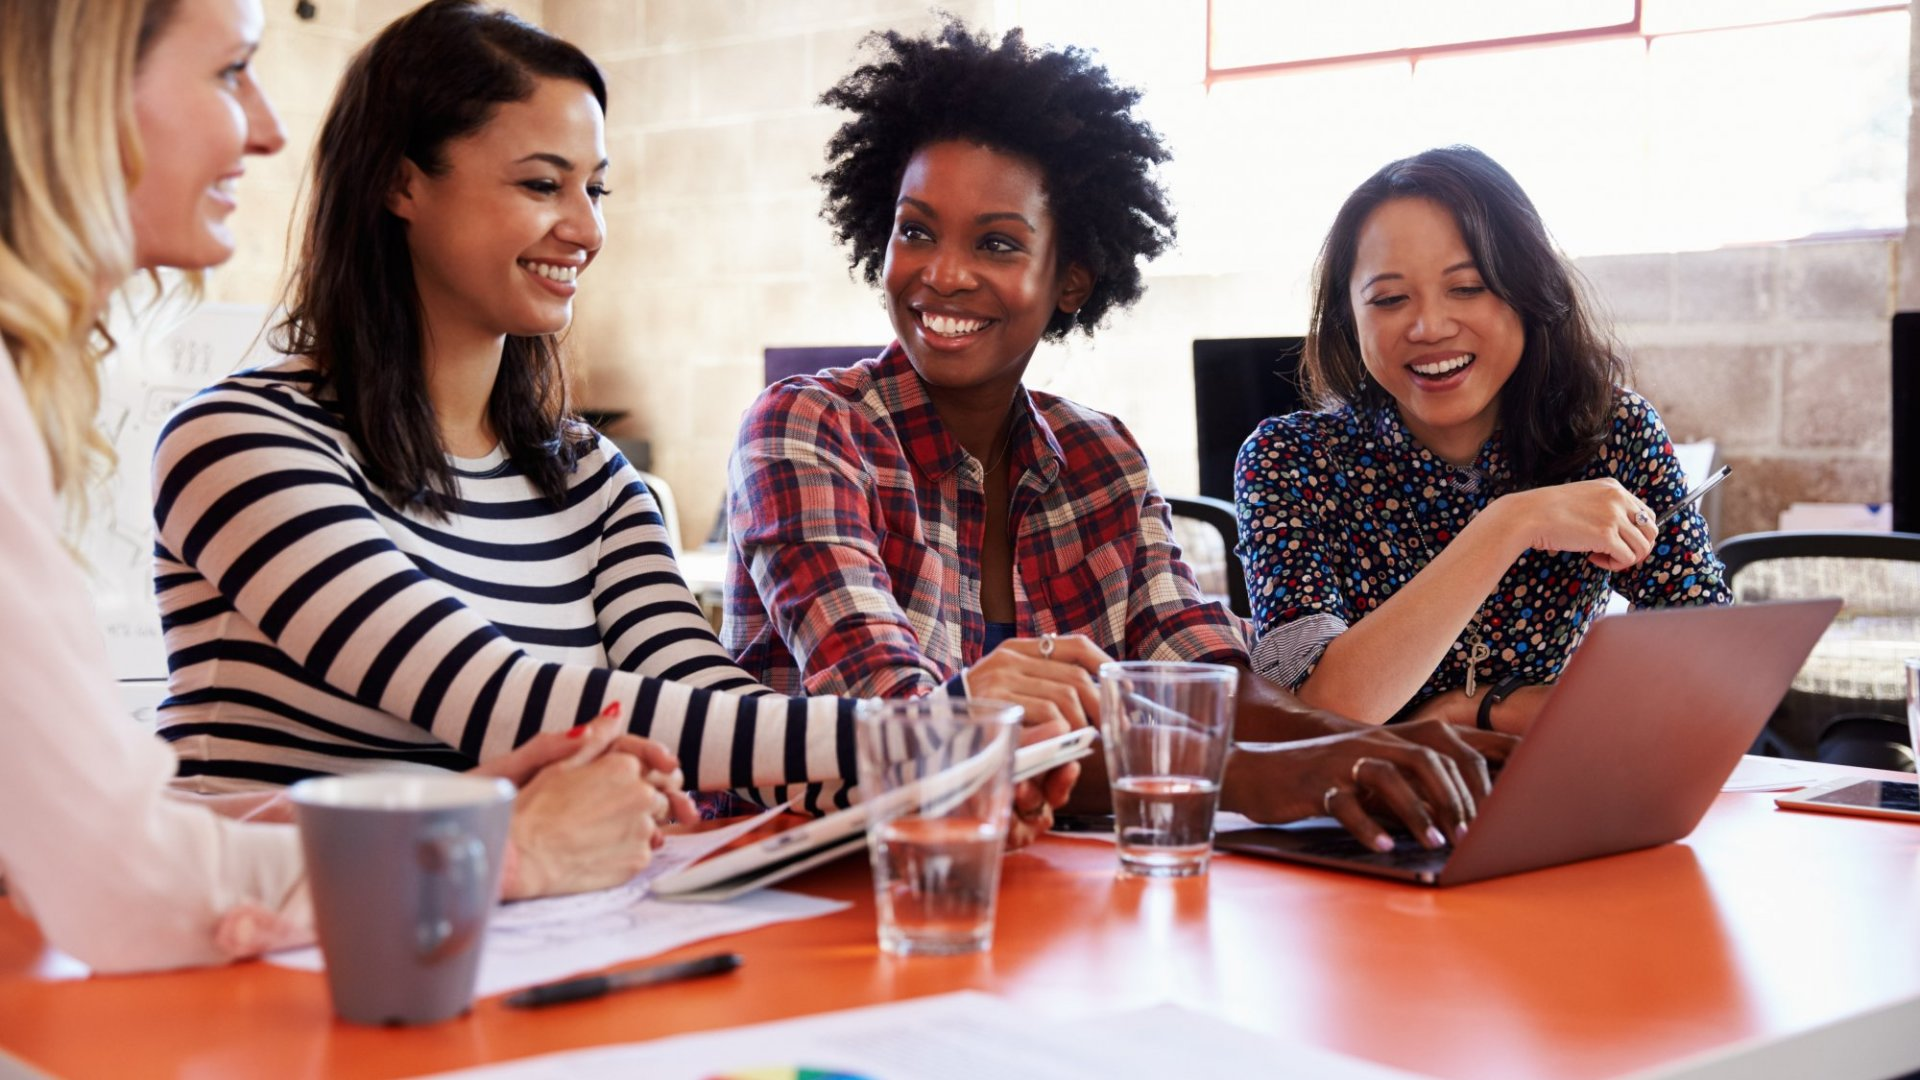 STEMing the Gender Gap in Technology: Ideas that Work